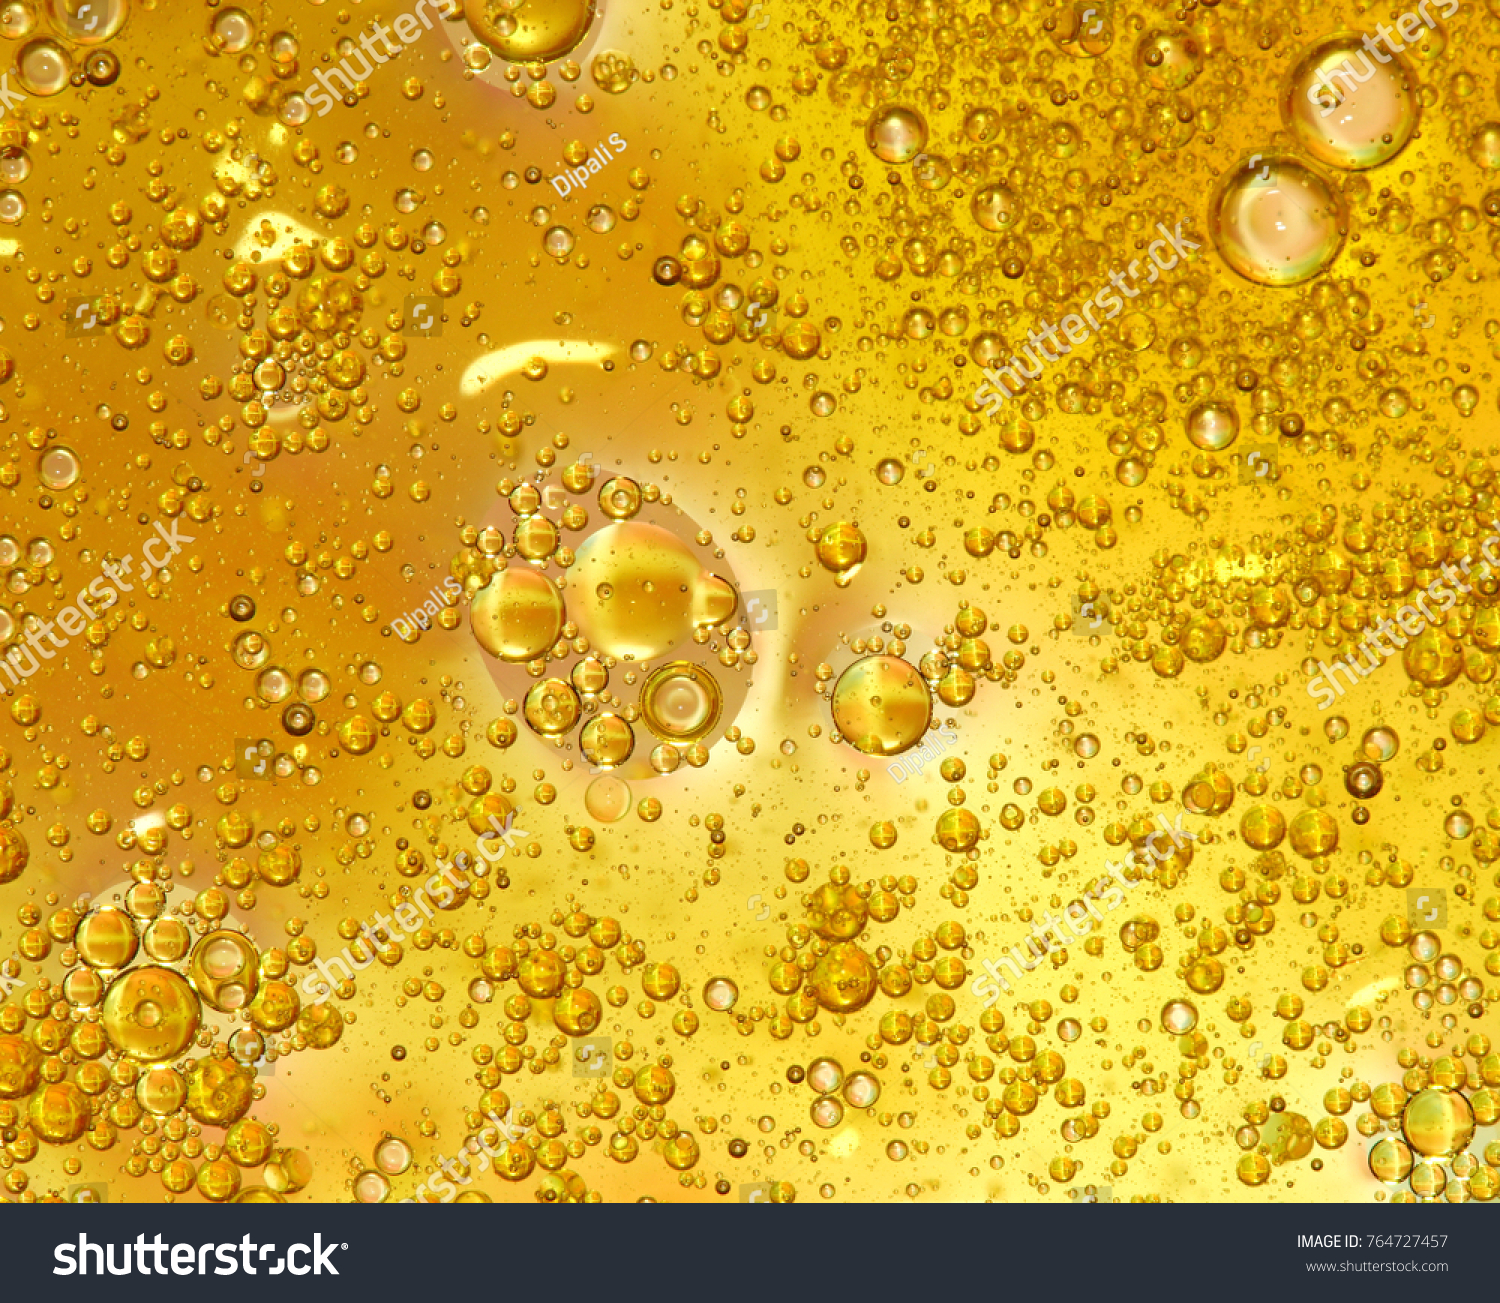 Oil Water Colorful Abstract Circles Background Stock Photo (Royalty ...